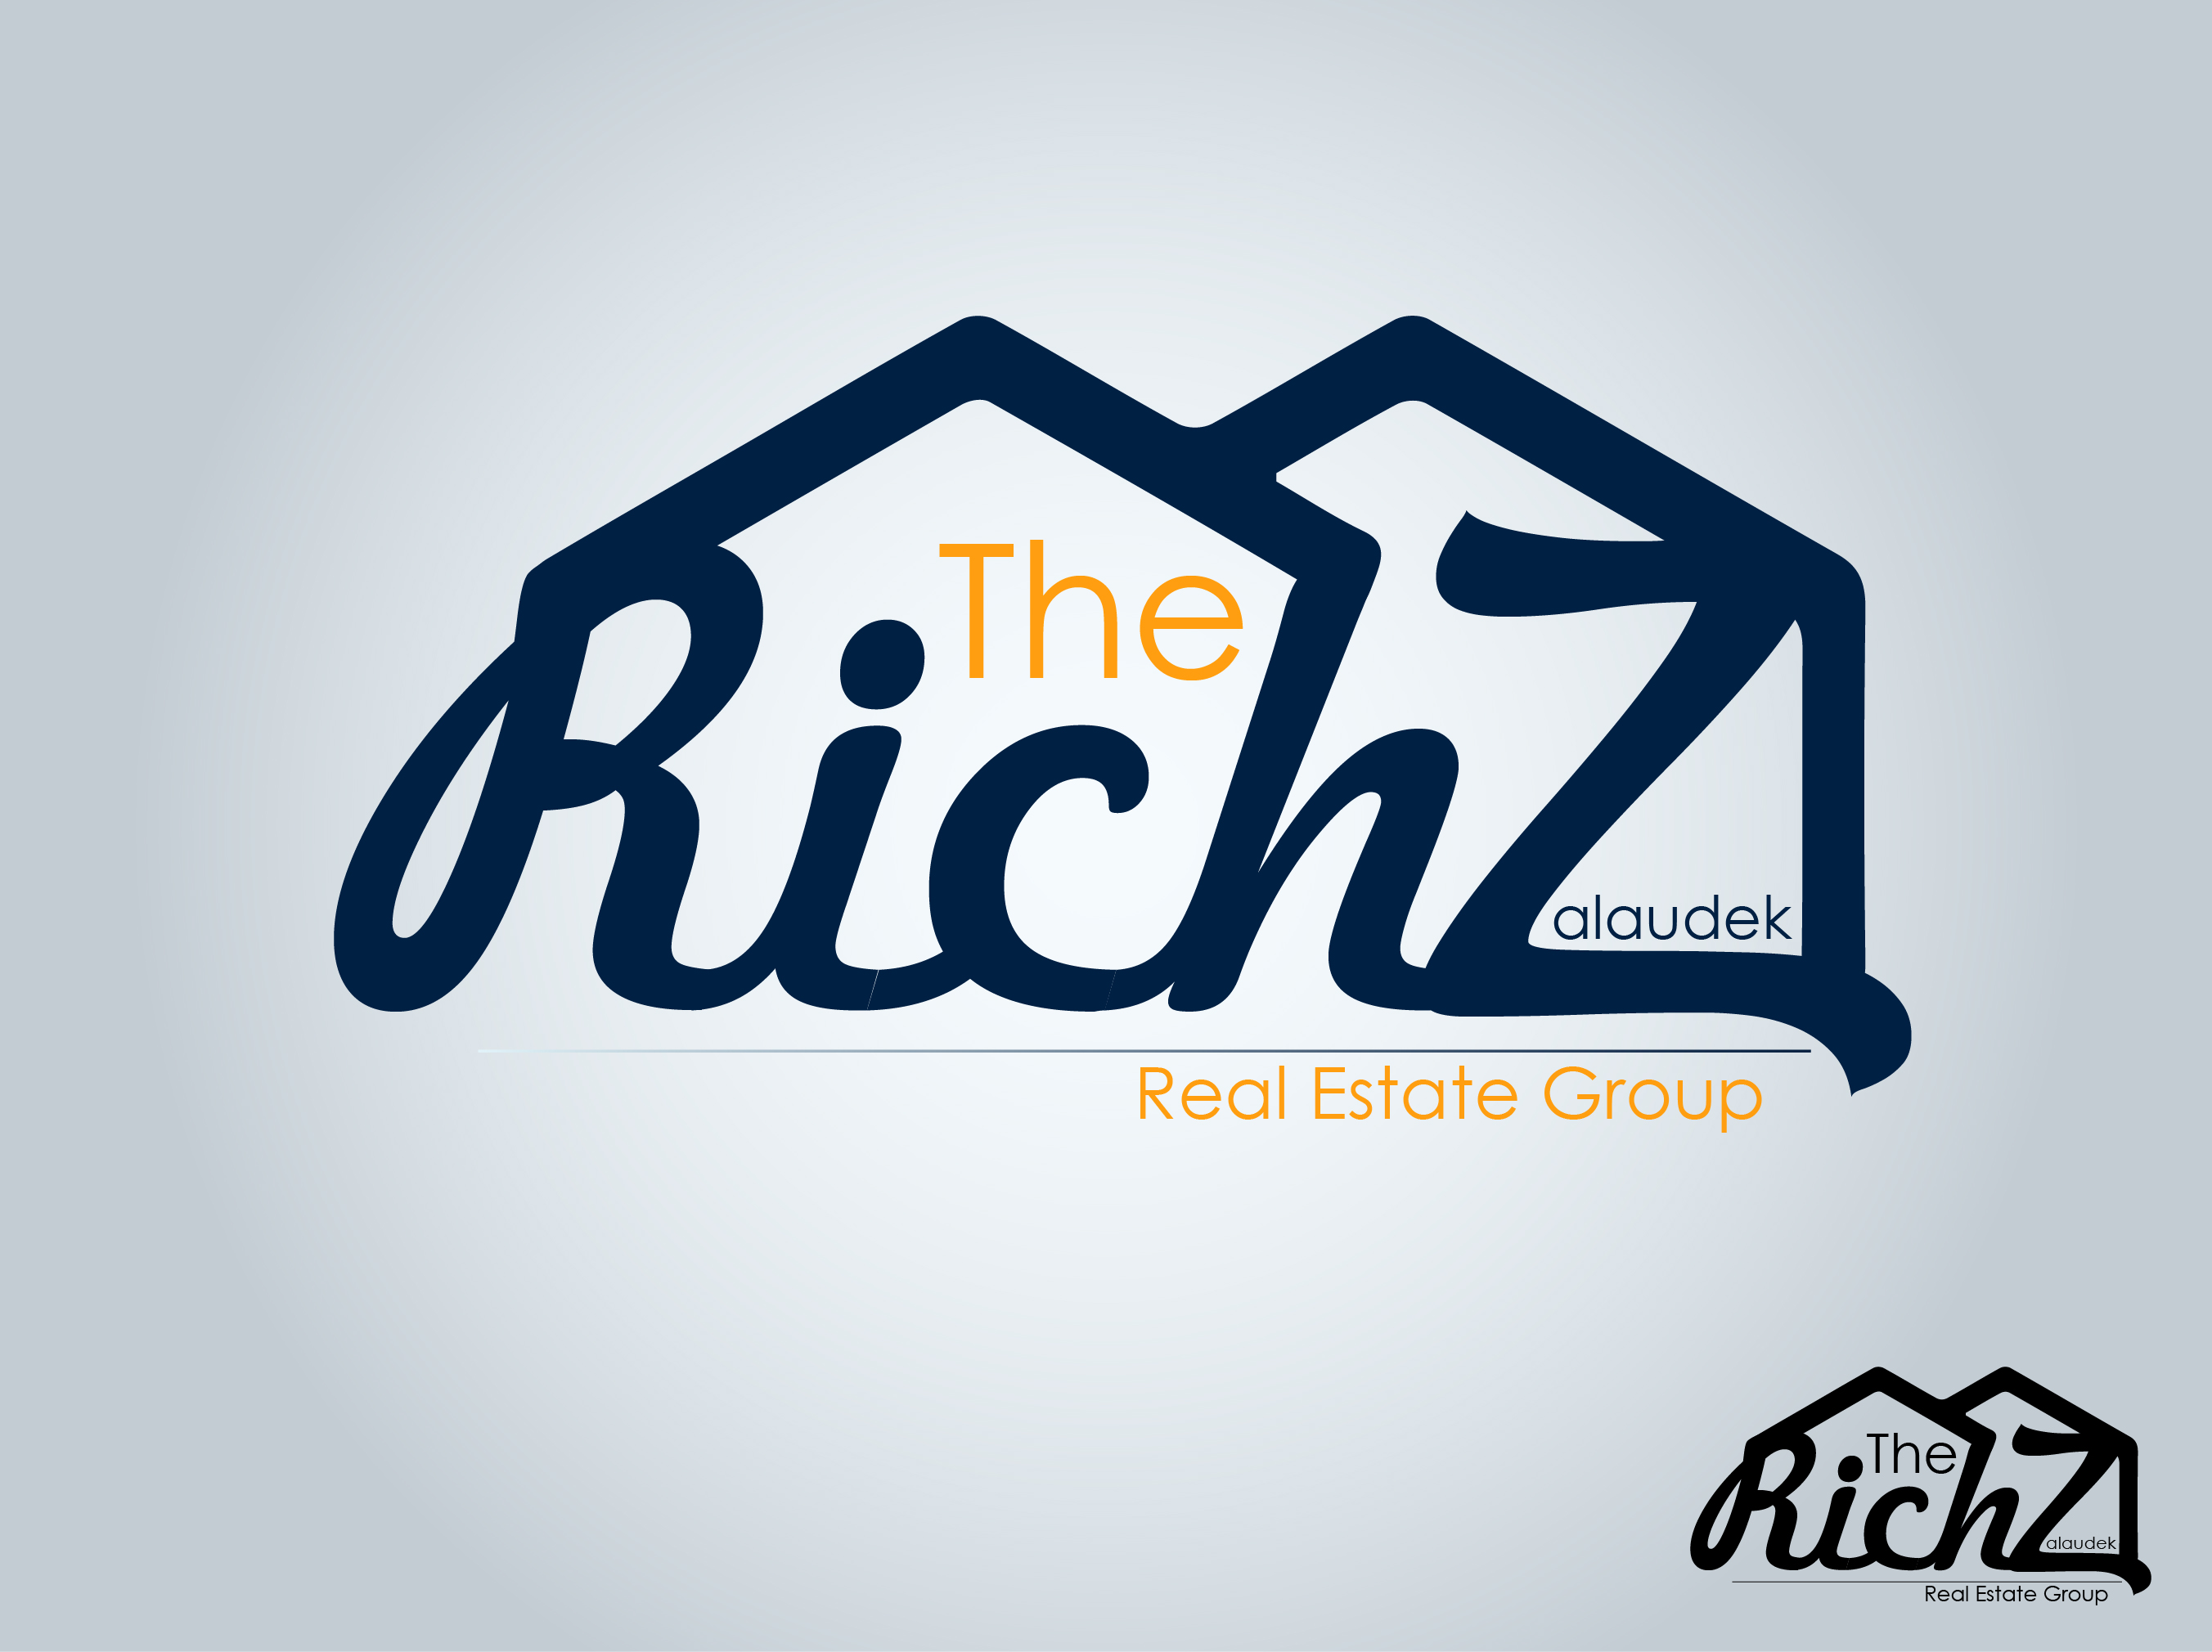 Logo Design by nTia - Entry No. 10 in the Logo Design Contest The Rich Z. Real Estate Group Logo Design.